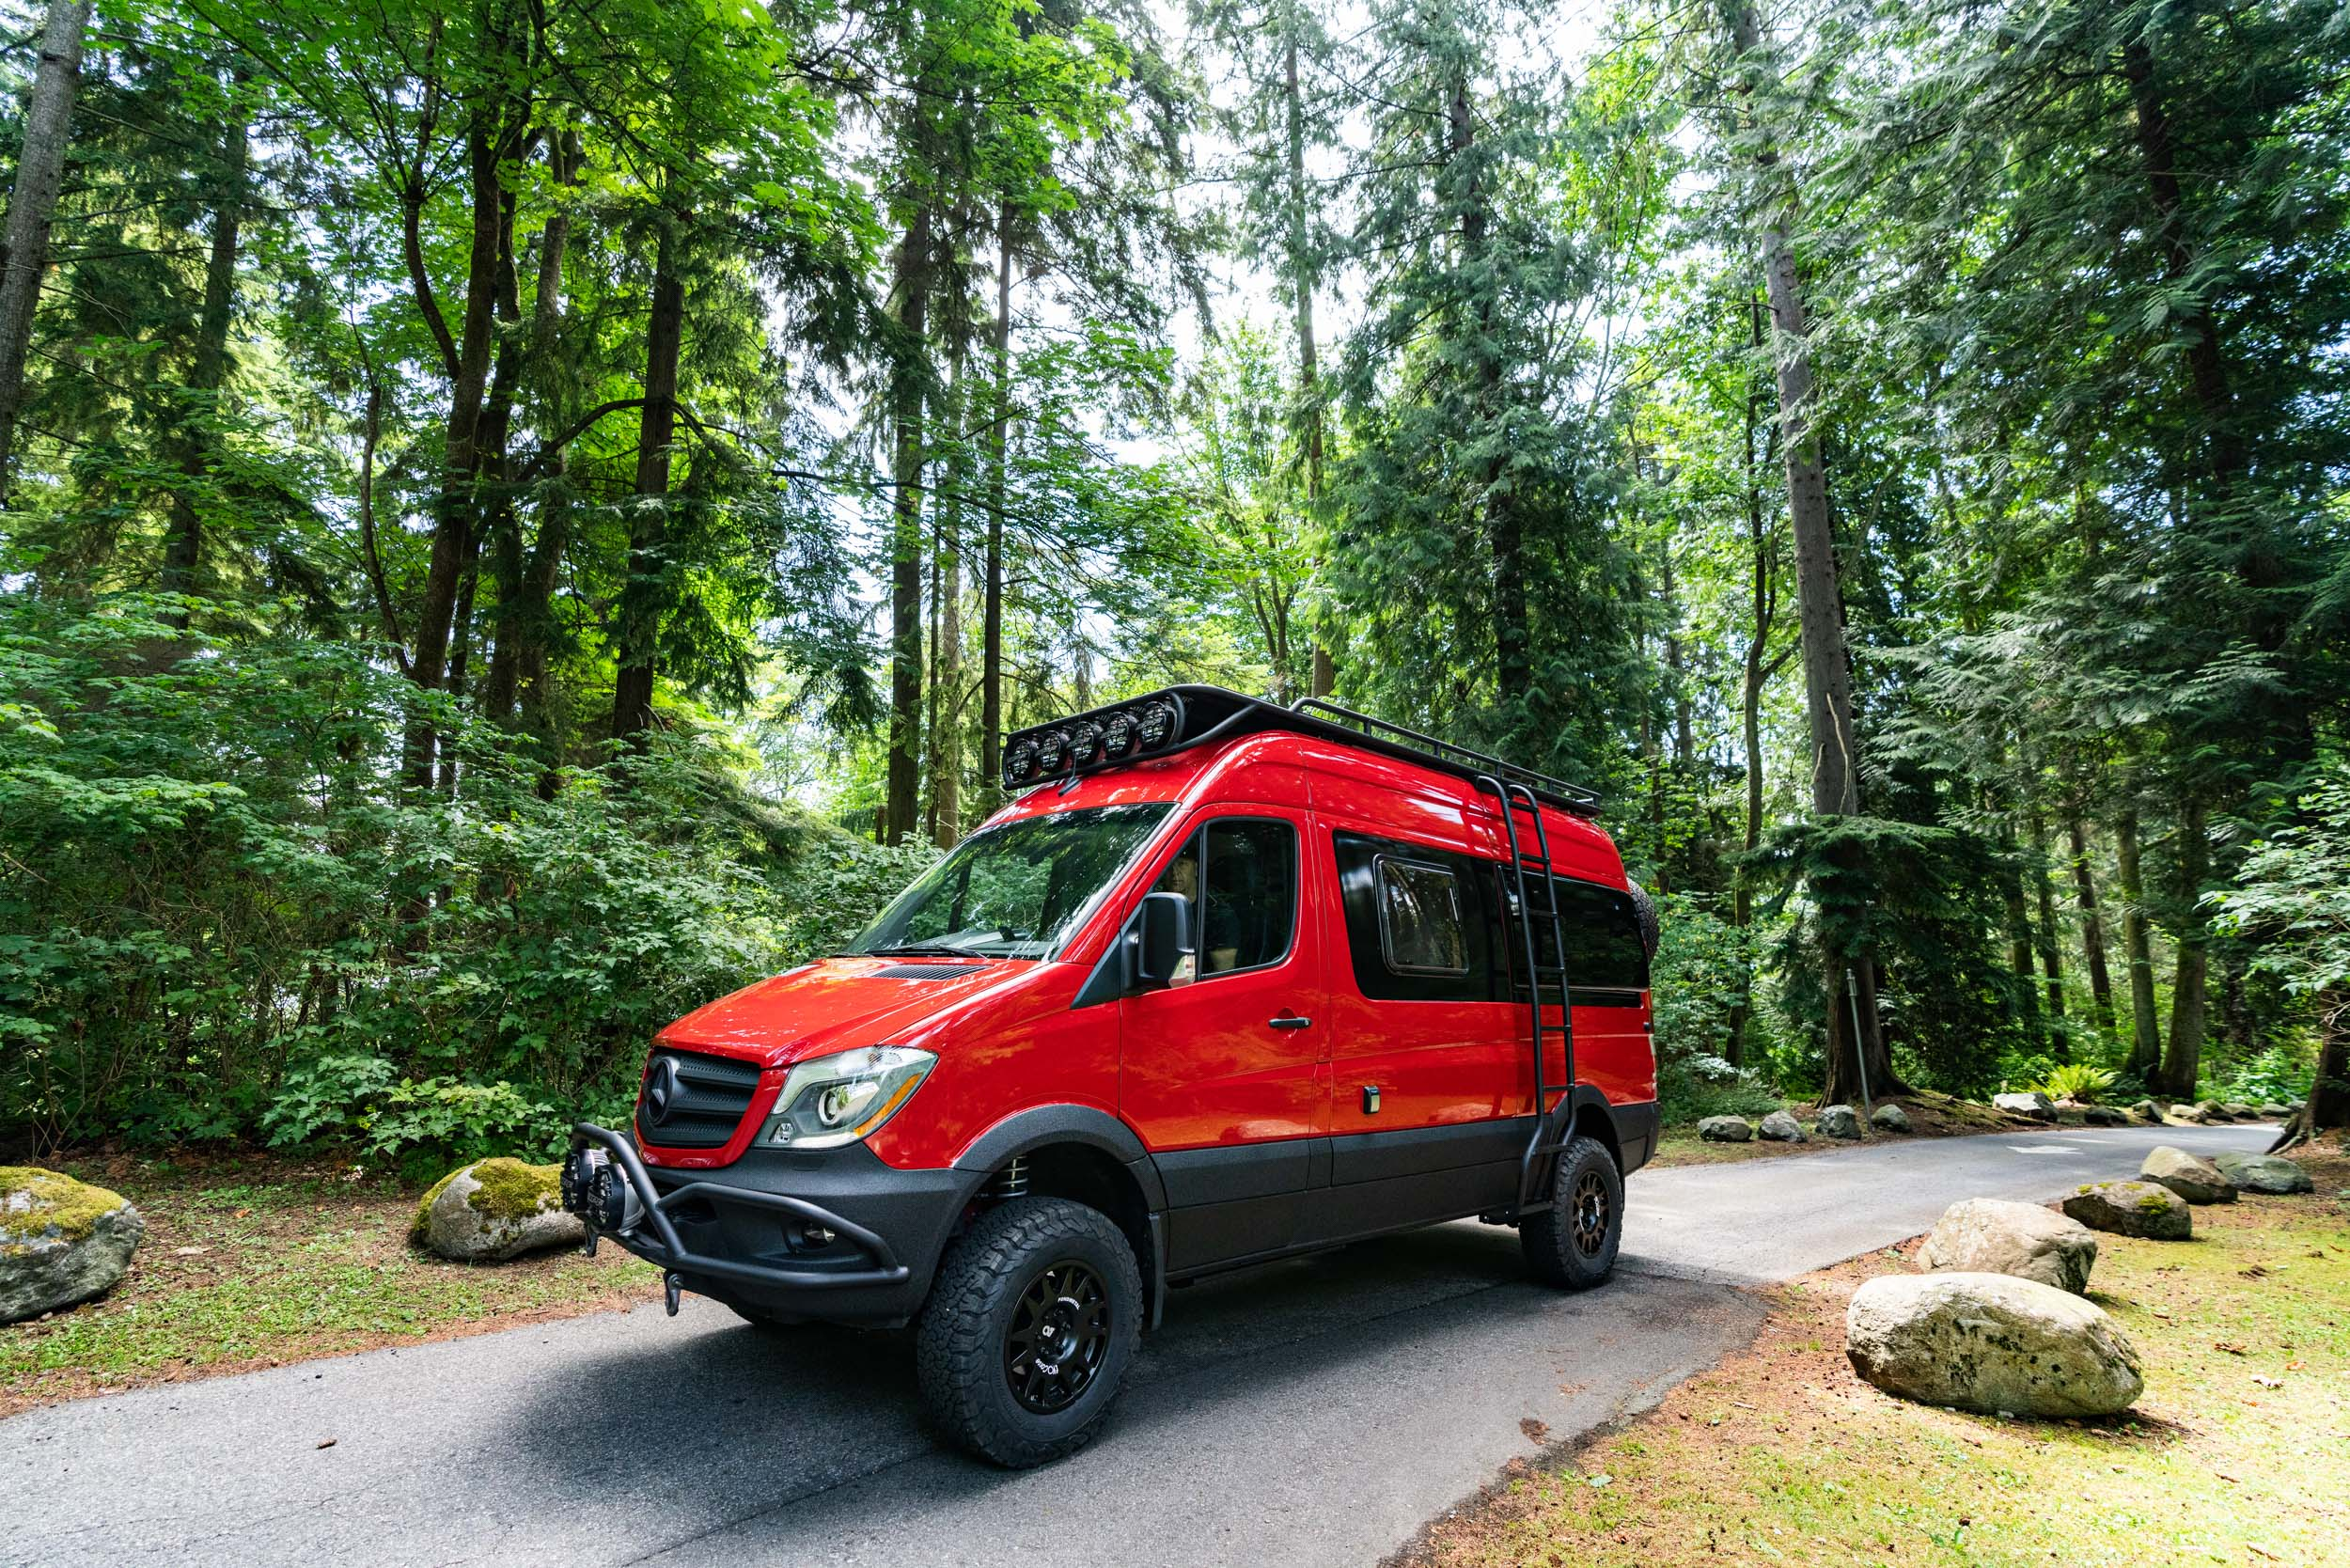 A bright red 144-inch Mercedes Sprinter van with black trim sits on a forest road with green trees all around it.